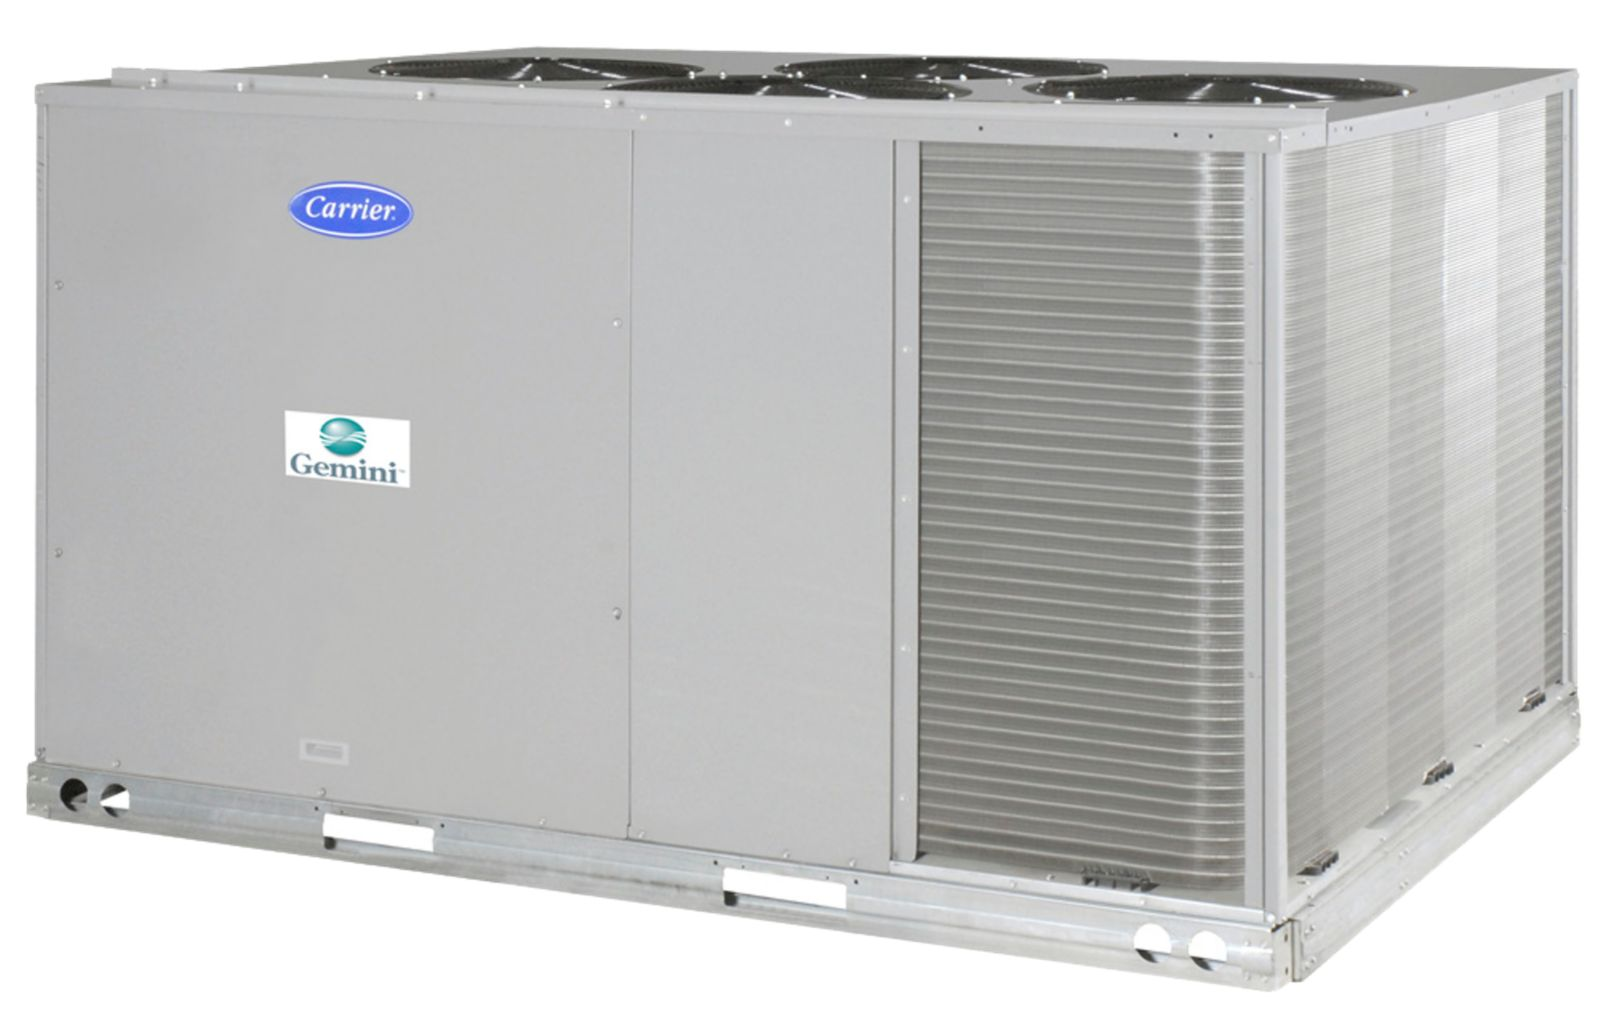 Carrier® Gemini® - 15 Ton Commercial Air Cooled Condensing